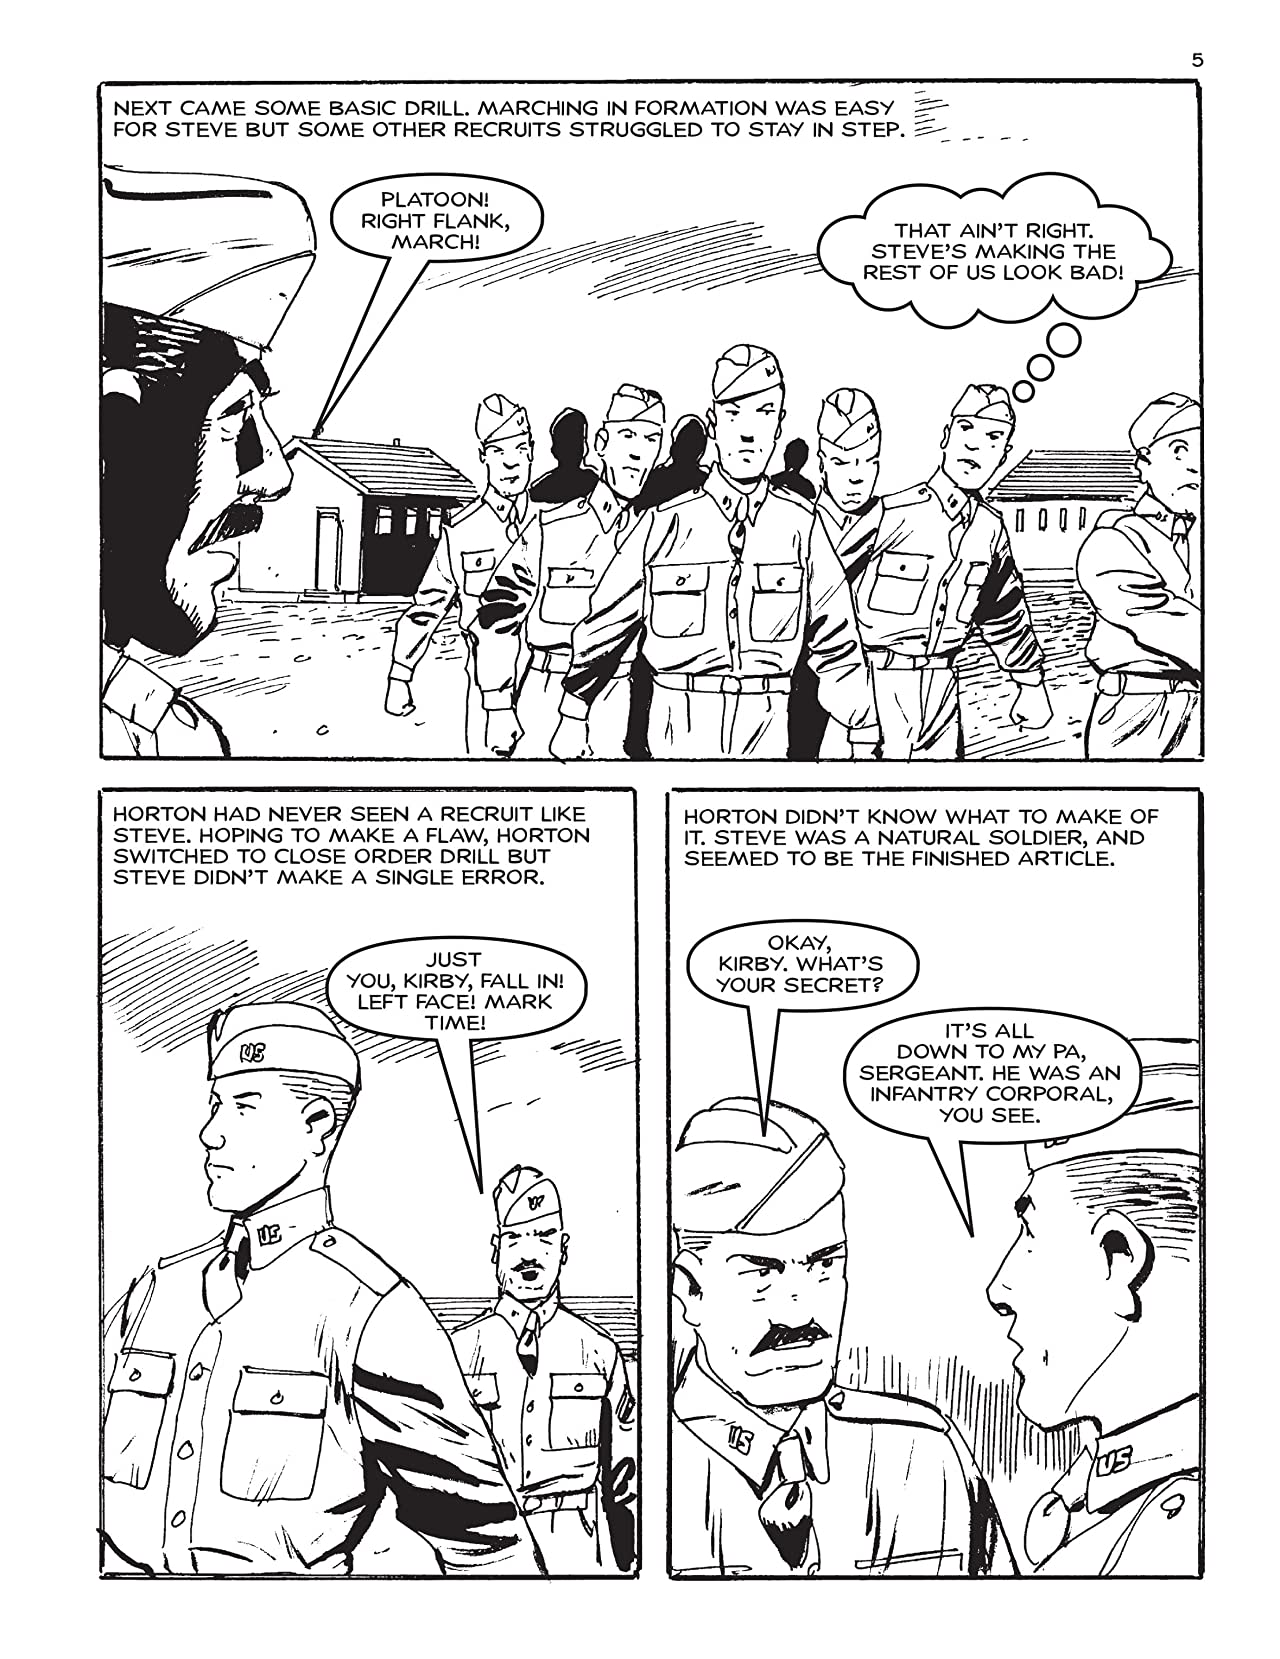 Commando #4921: A Soldier's Legacy